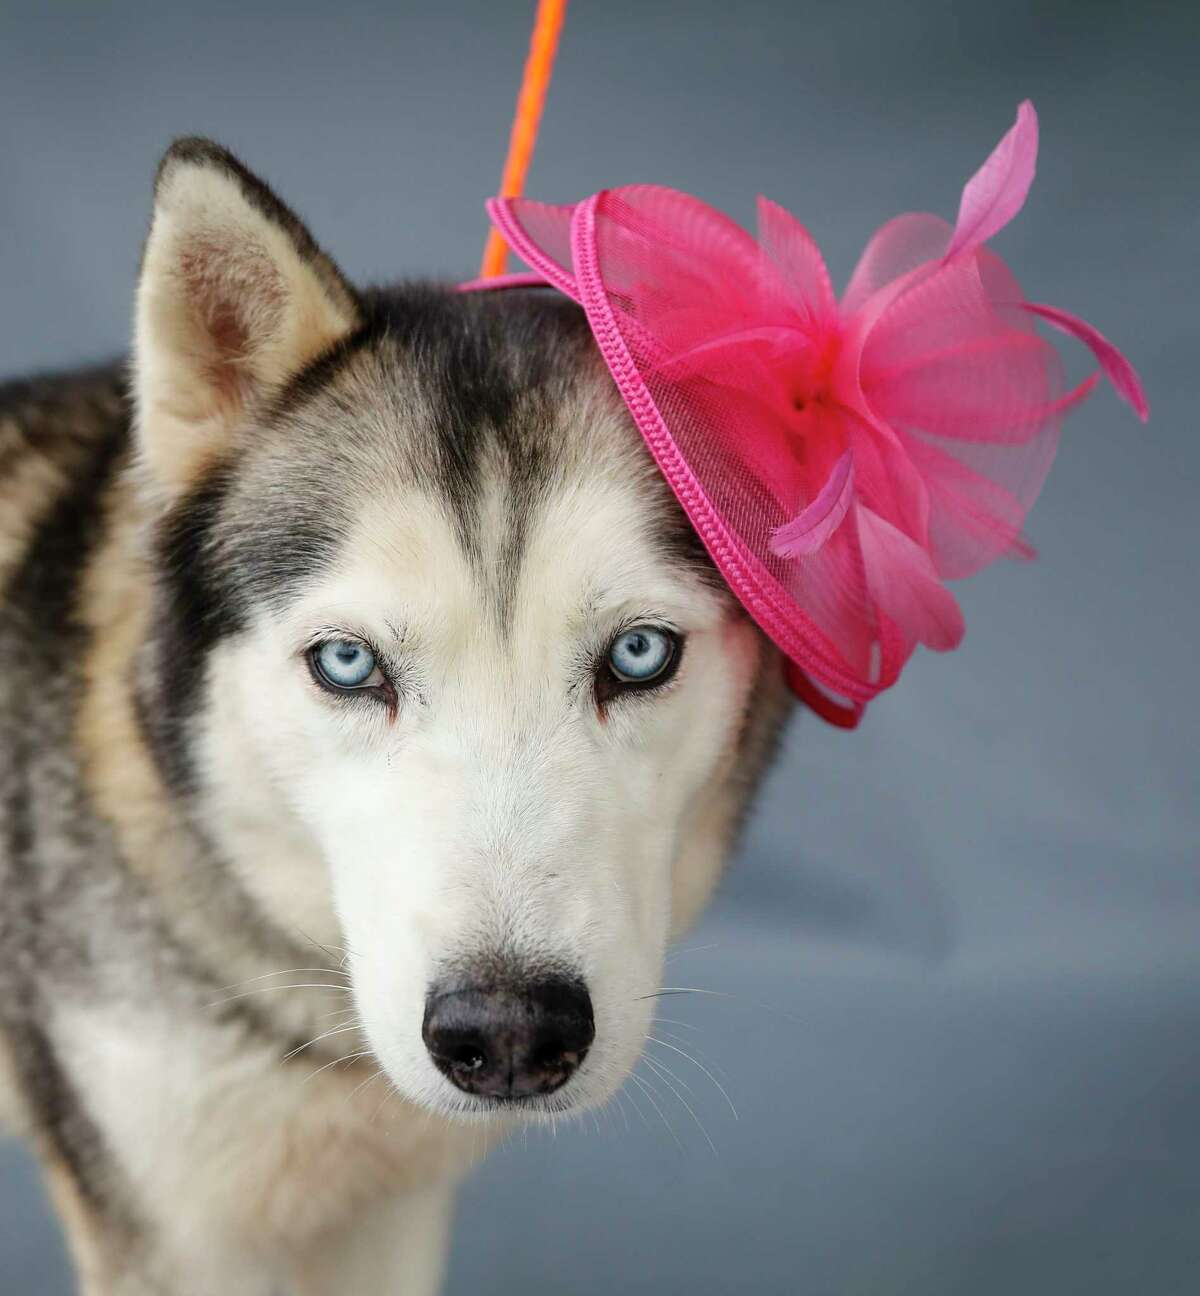 Juno (A552834) is a 3-year-old, female, Siberian Husky mix available for adoption from the Harris County Animal Shelter in Houston,Thursday, April 2, 2020. Juno is a very sweet, chill dog. Juno was brought in as one of seven pets that were received by the shelter on March 27 after their owner was arrested on criminal charges unrelated to animal cruelty. She is among many of the larger, older dogs at the shelter that are in need of temporary or forever homes. She is a healthy, good-natured dog that is available for adoption and in need of a responsible pet-lover, who has the capacity to care for her.